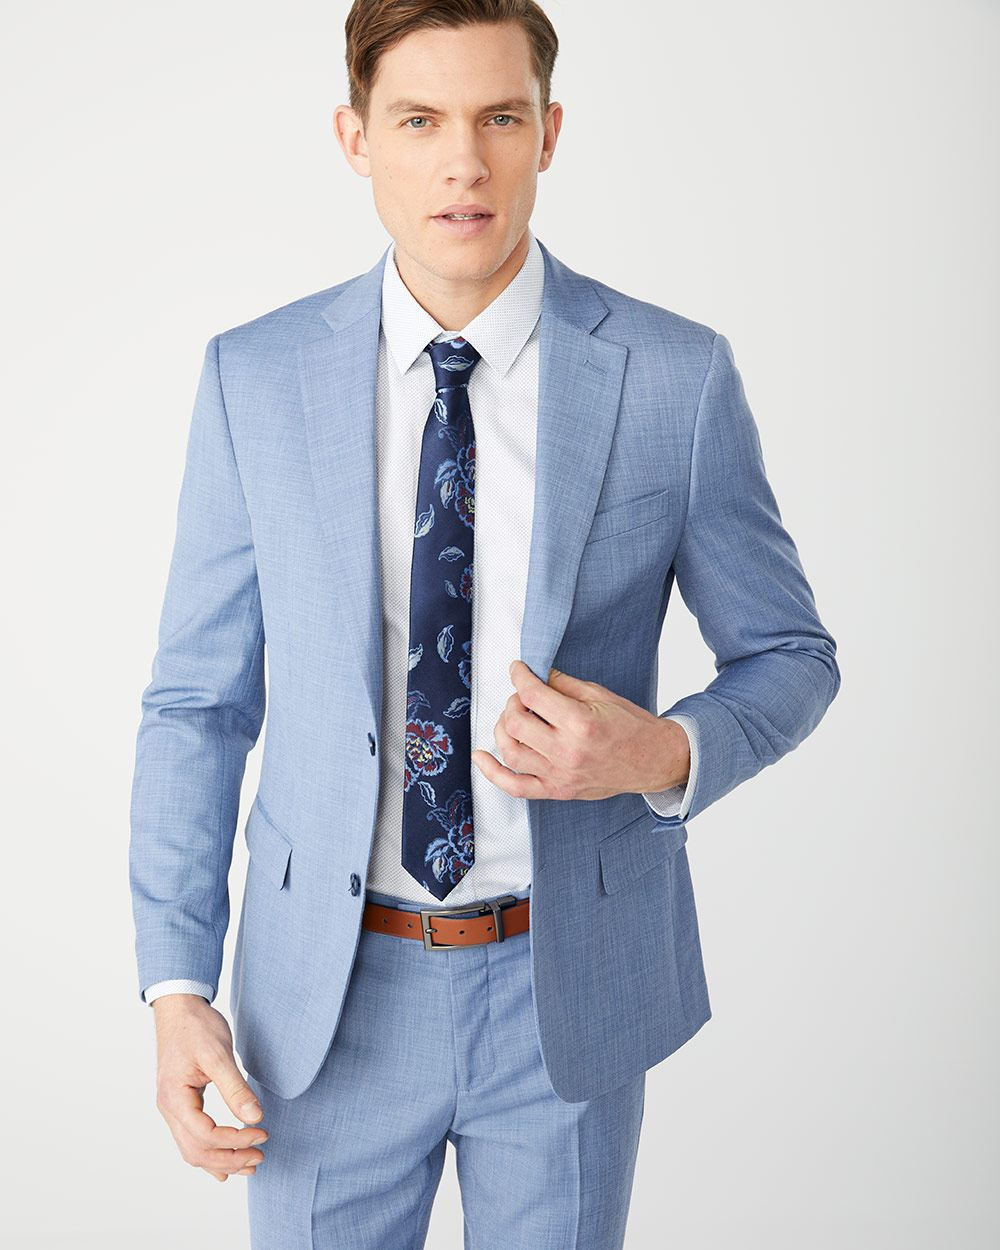 Slim Fit two-tone light blue suit Blazer